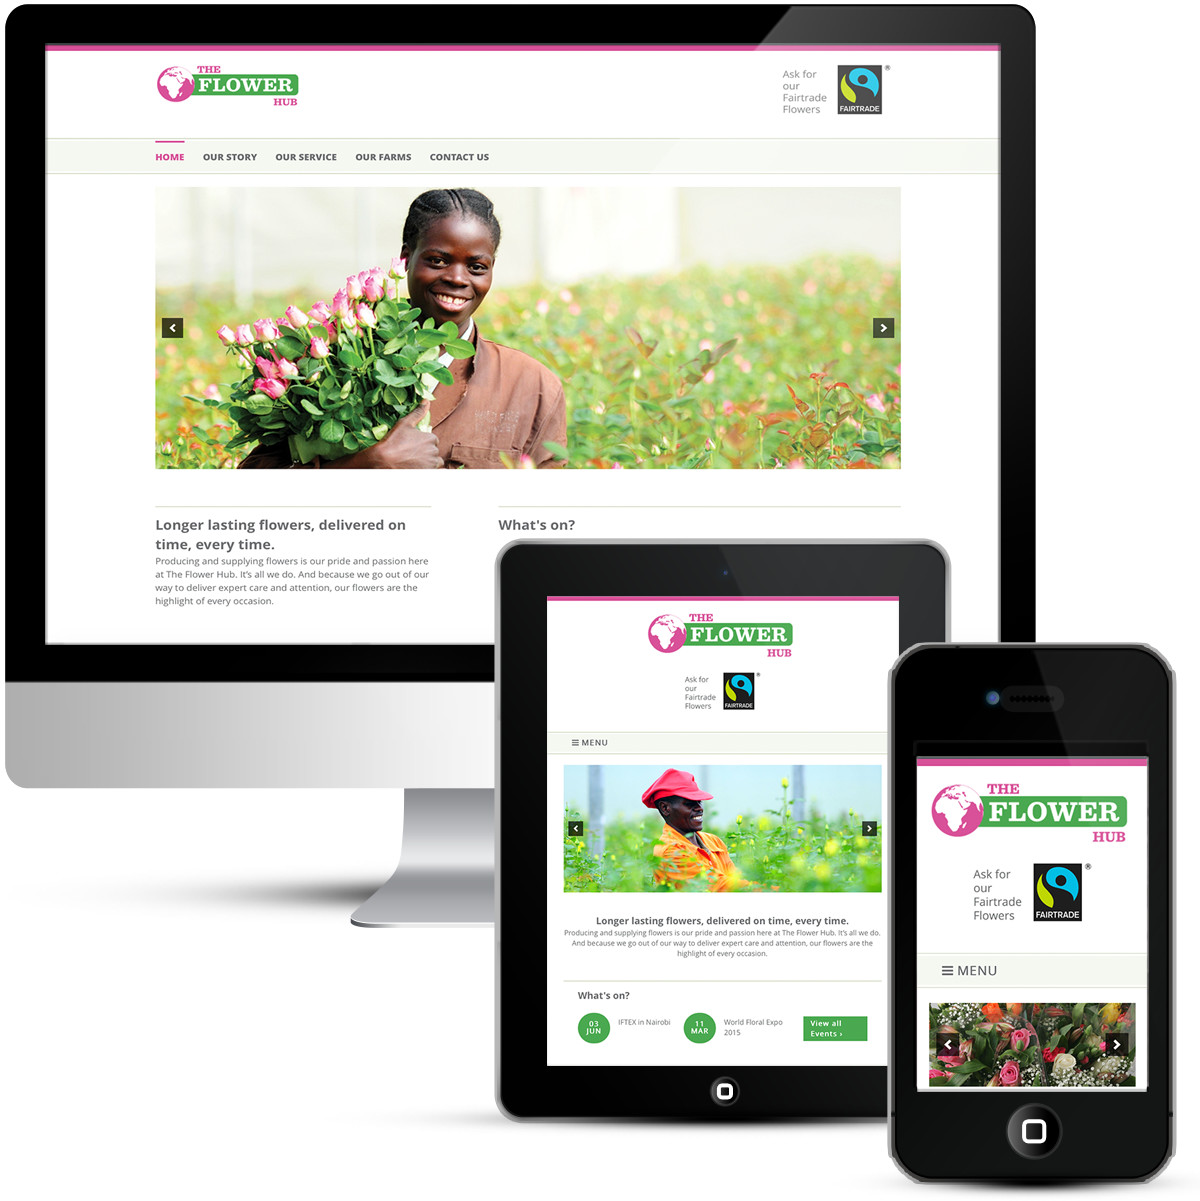 Mobile responsive webdesign for the Flower Hub